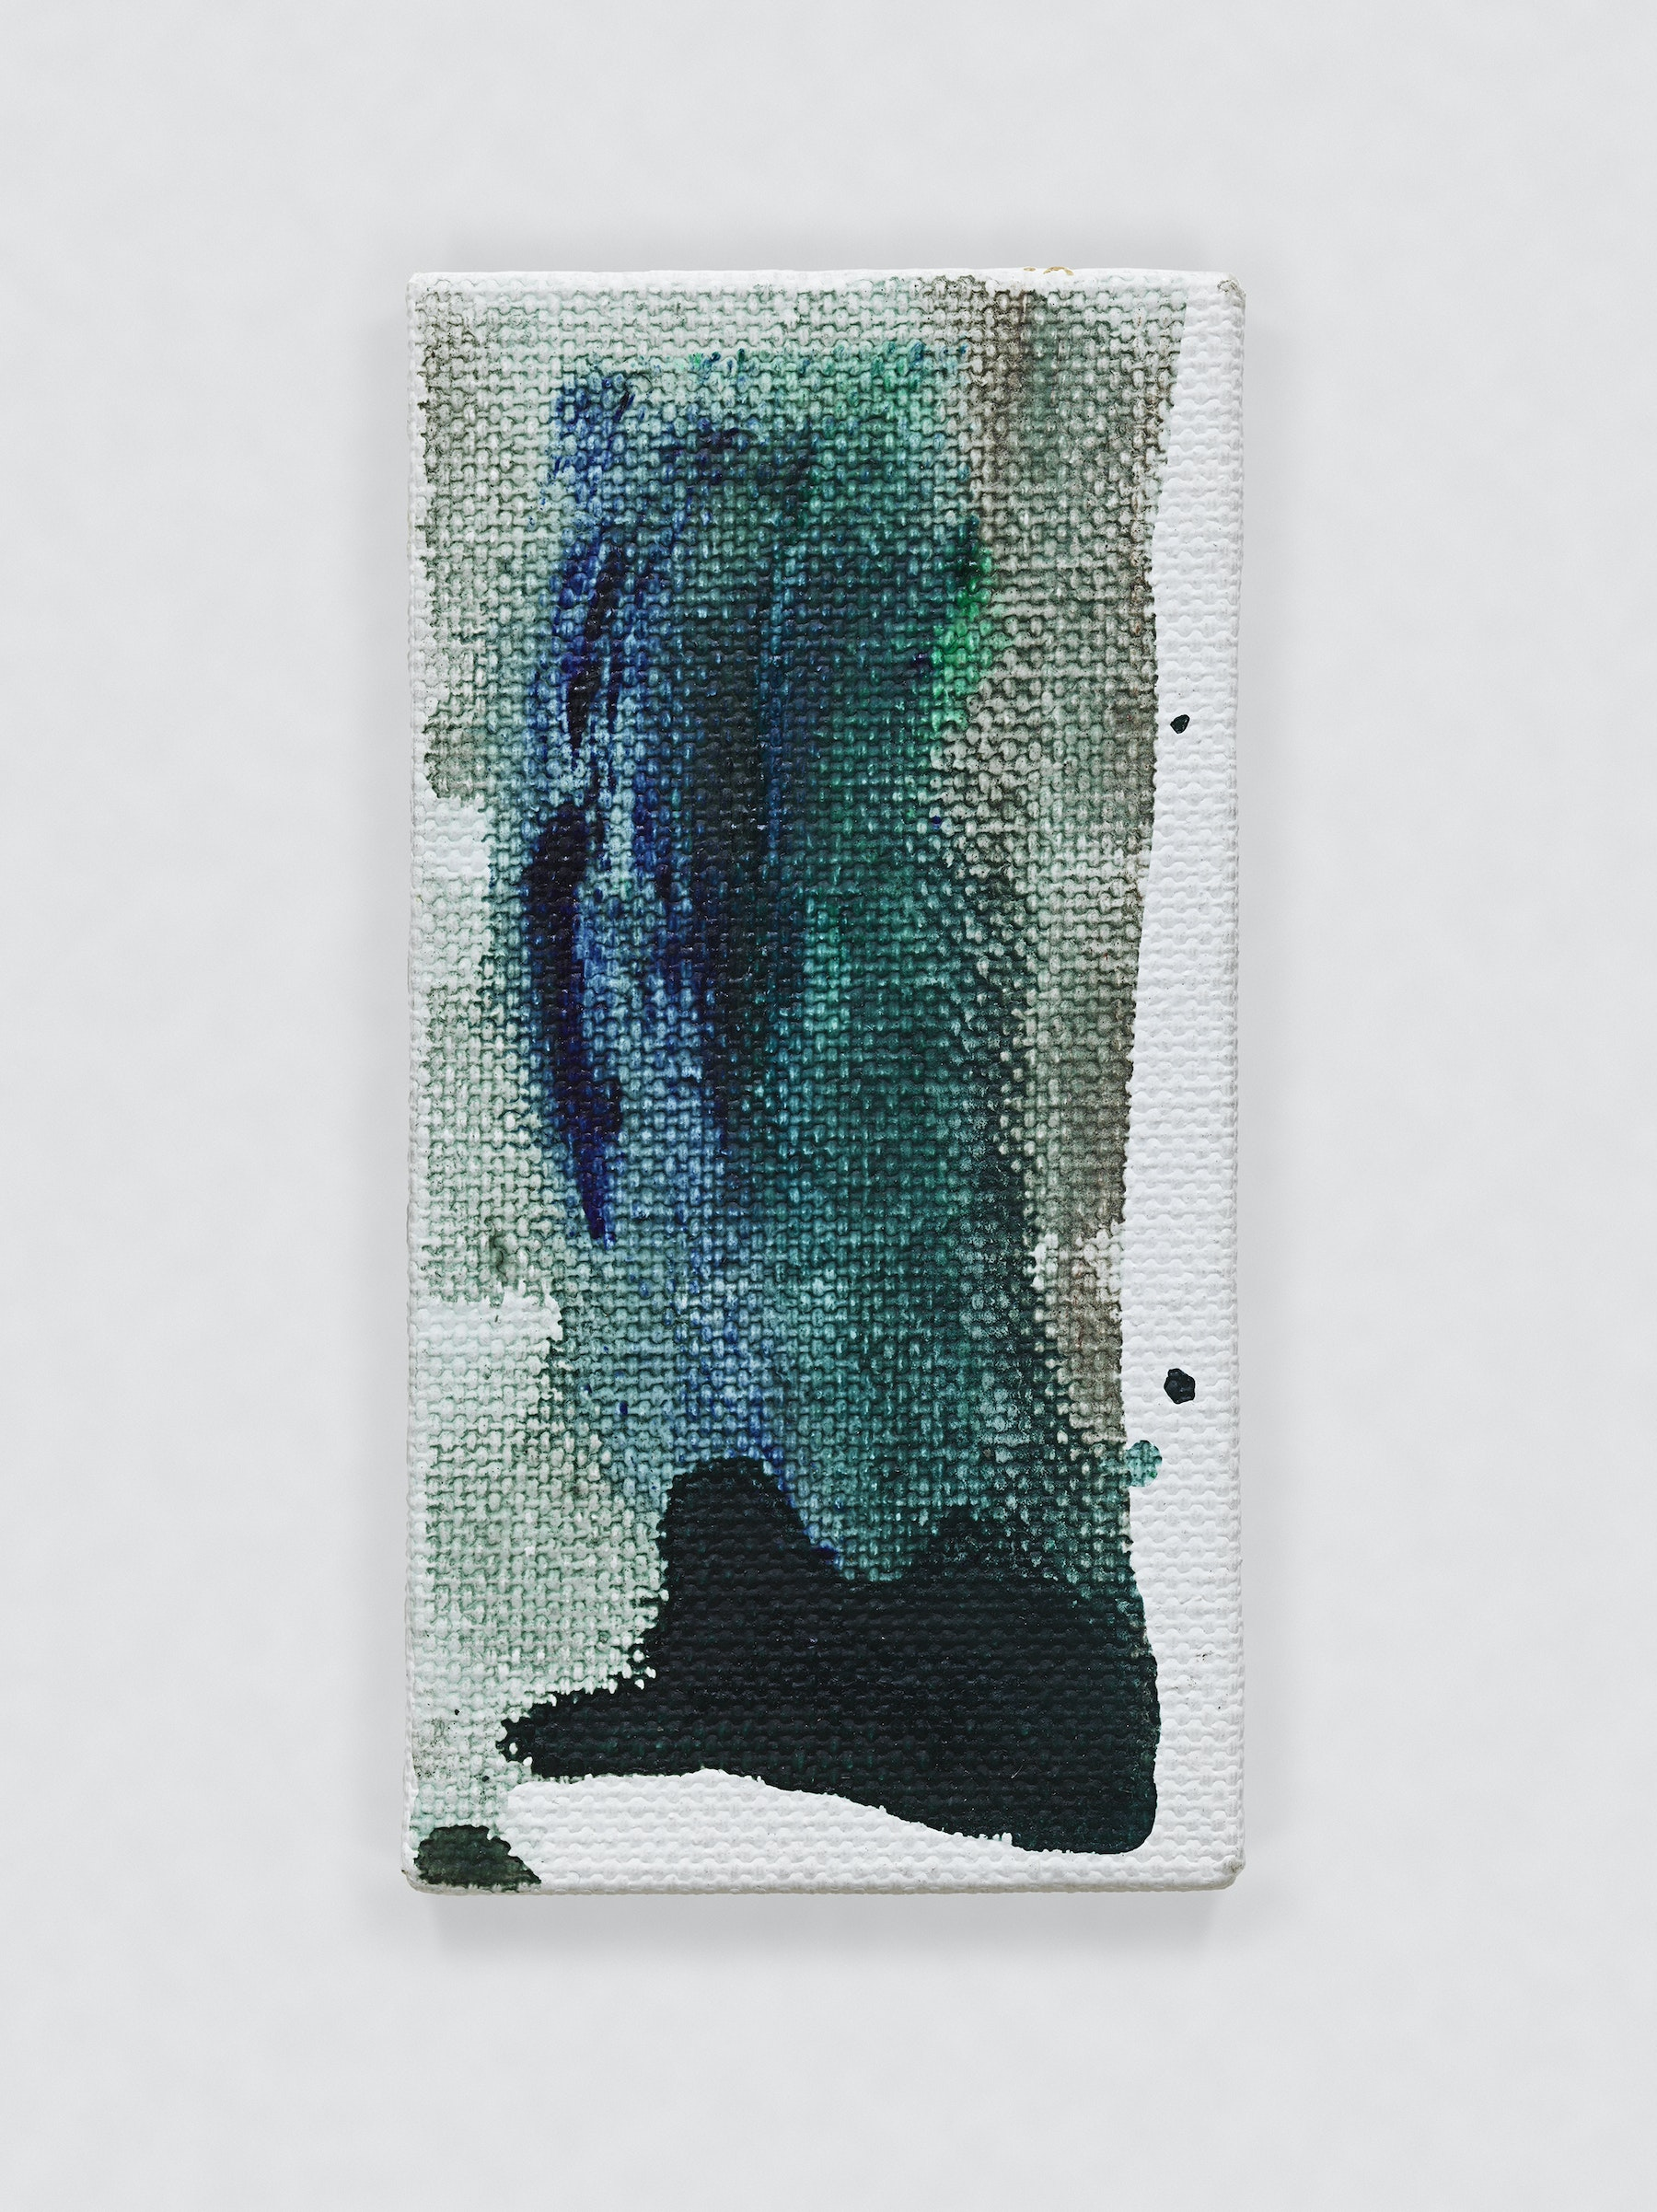 """Louise Fishman """"UNTITLED,"""" 2014 Oil on canvas 4.06 x 2.09"""" [HxW] (10.31 x 5.31 cm) Inventory #FIS144 Courtesy of the artist and Vielmetter Los Angeles Photo credit: Genevieve Hanson Signed and dated on verso"""